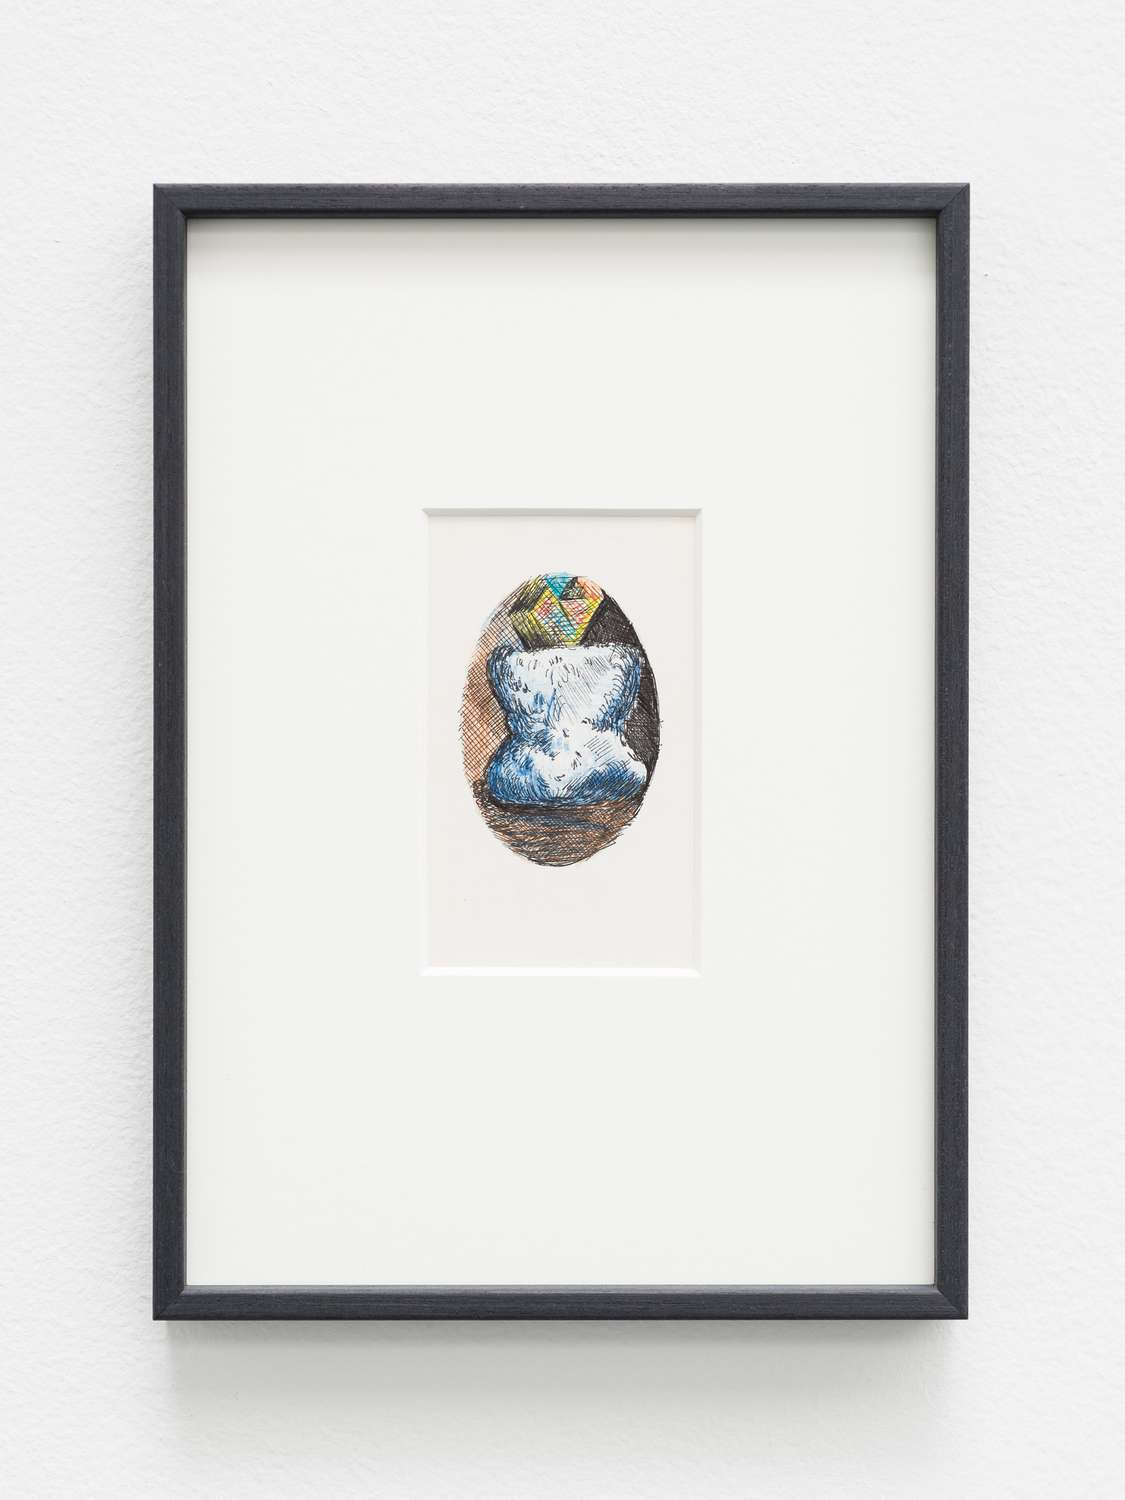 Group Show at Galerie Gregor Staiger – Art Viewer